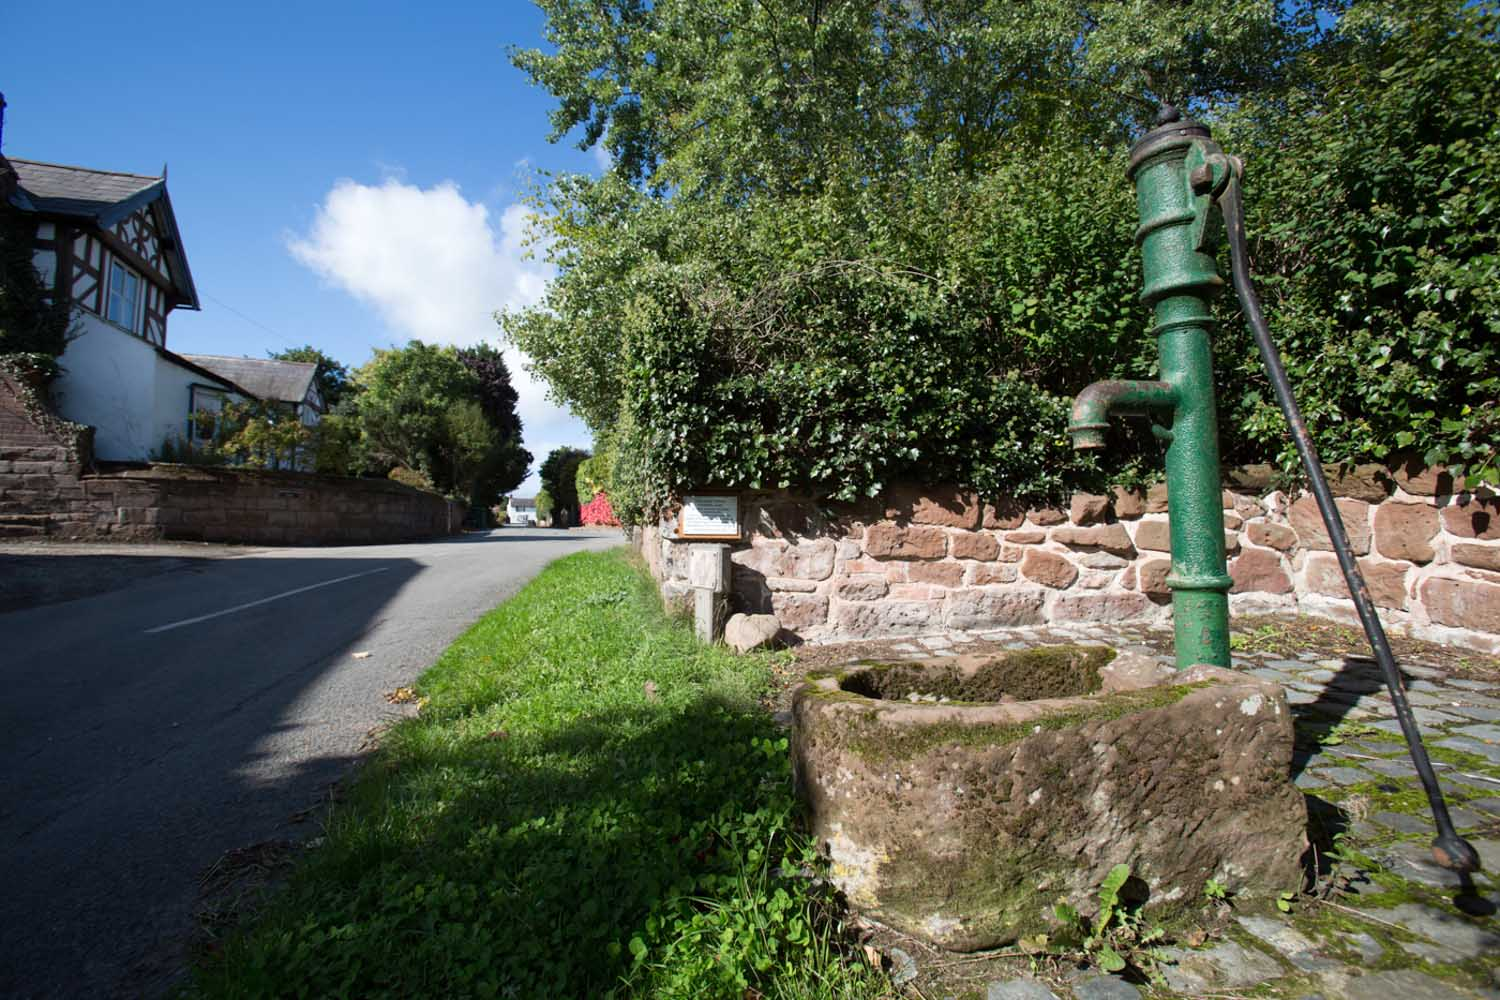 Village of Churton, Cheshire, England. Picturesque view of a restored water pump on Pump Lane.